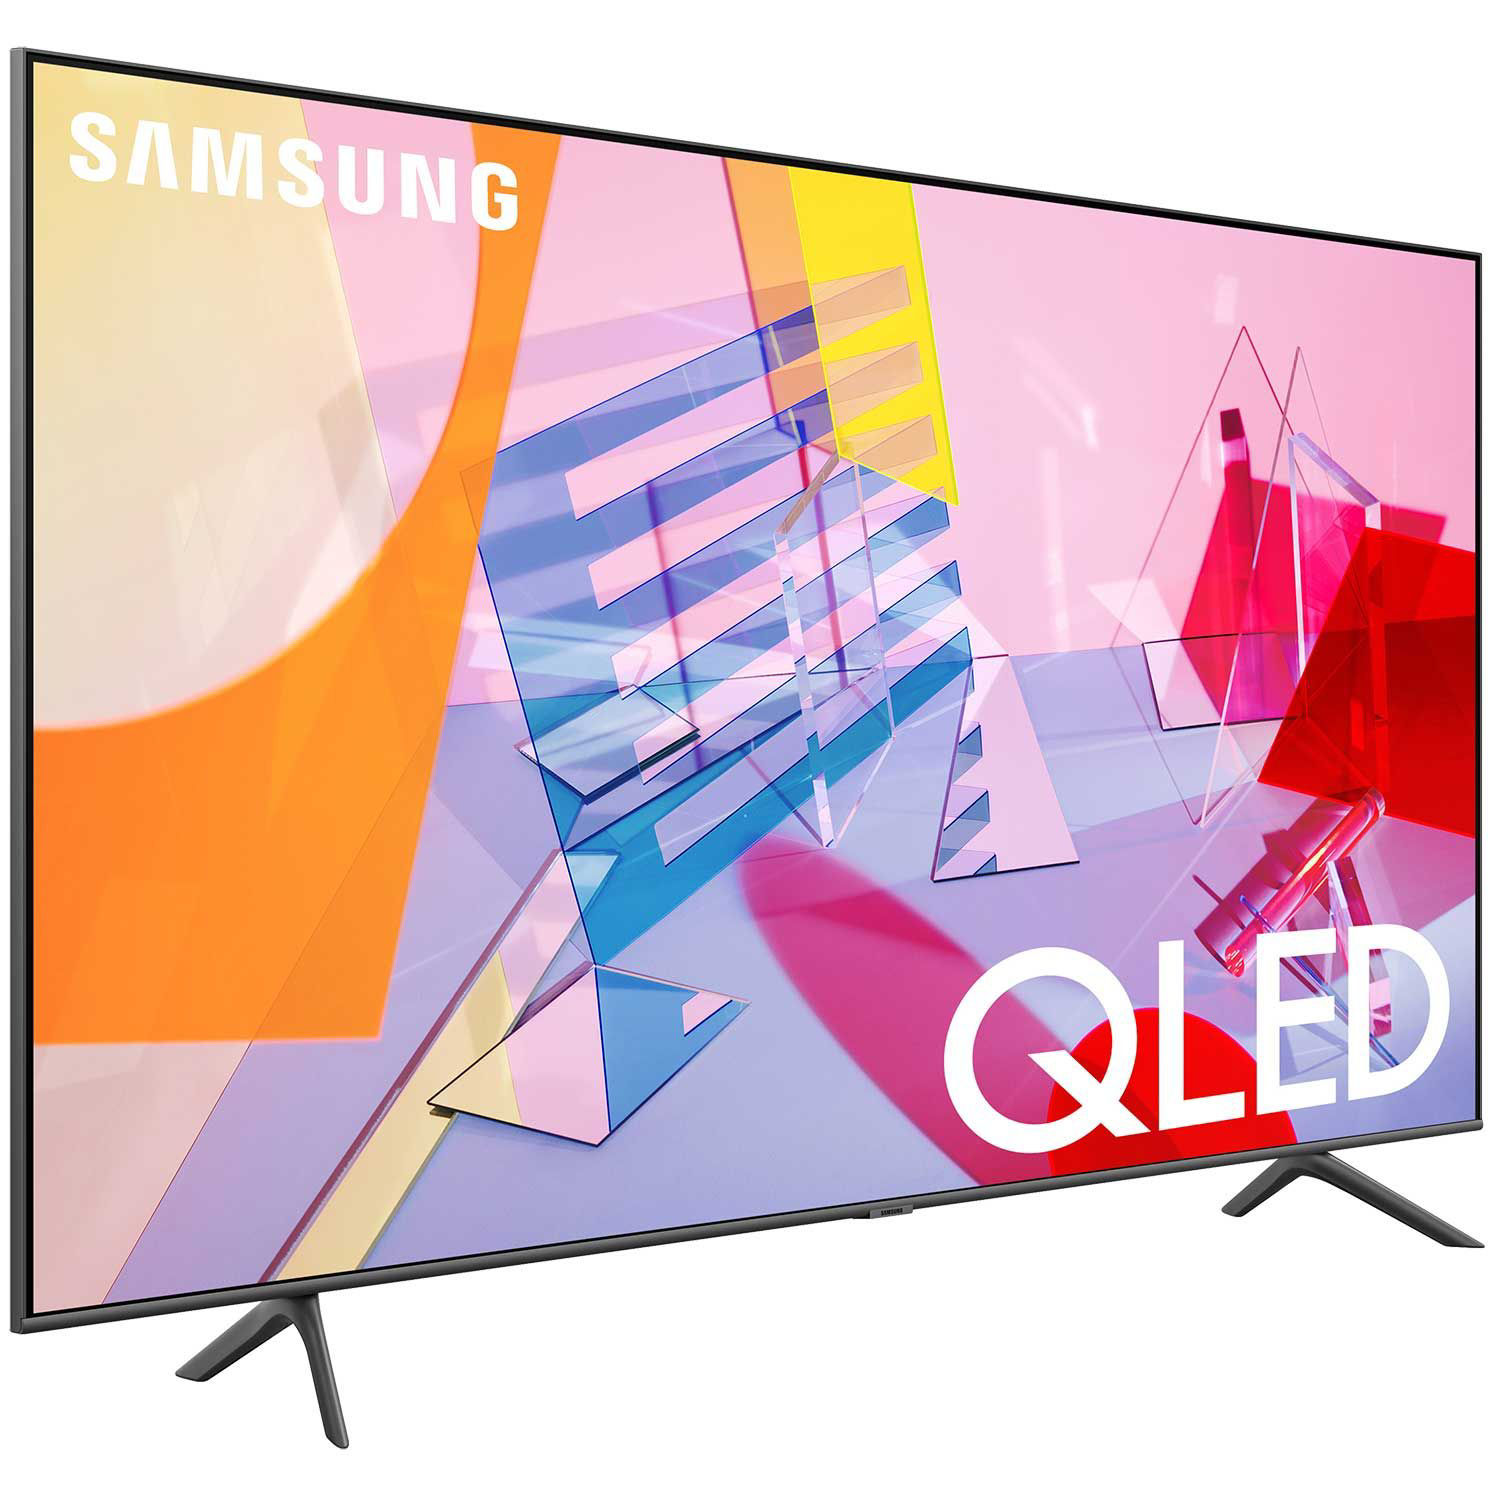 Picture of Samsung 75-Inch Q60T Class QLED Smart 4K TV